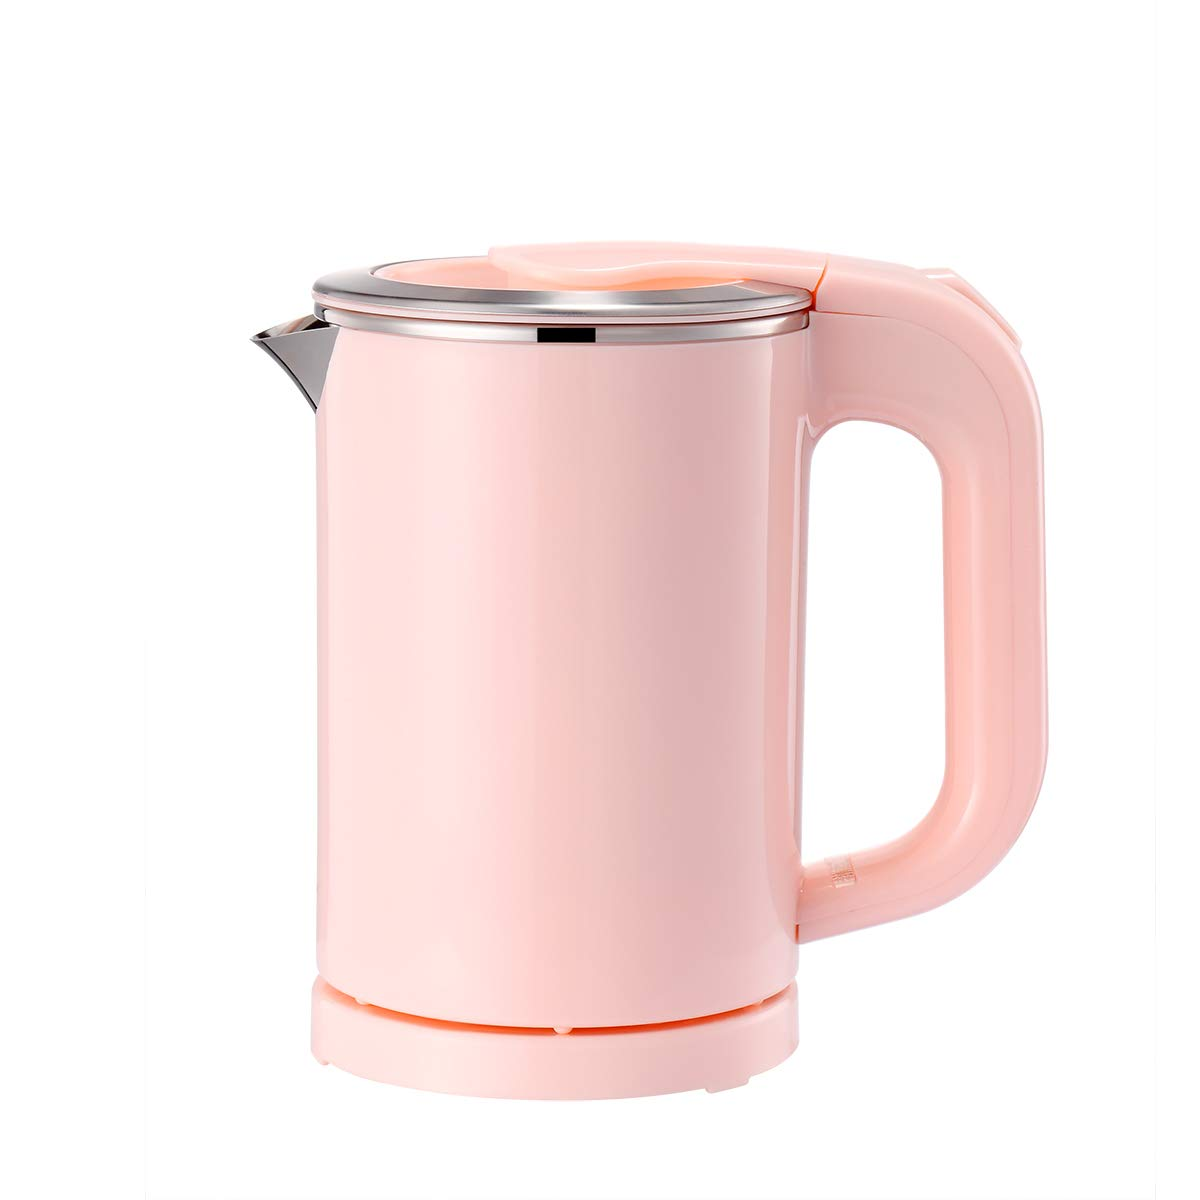 BonNoces Portable Electric Kettle - 0.5L Small Stainless Steel Travel Kettle - Quiet Fast Boil & Cool Touch - Perfect for Traveling Boiling Water, Coffee, Tea (Pink)